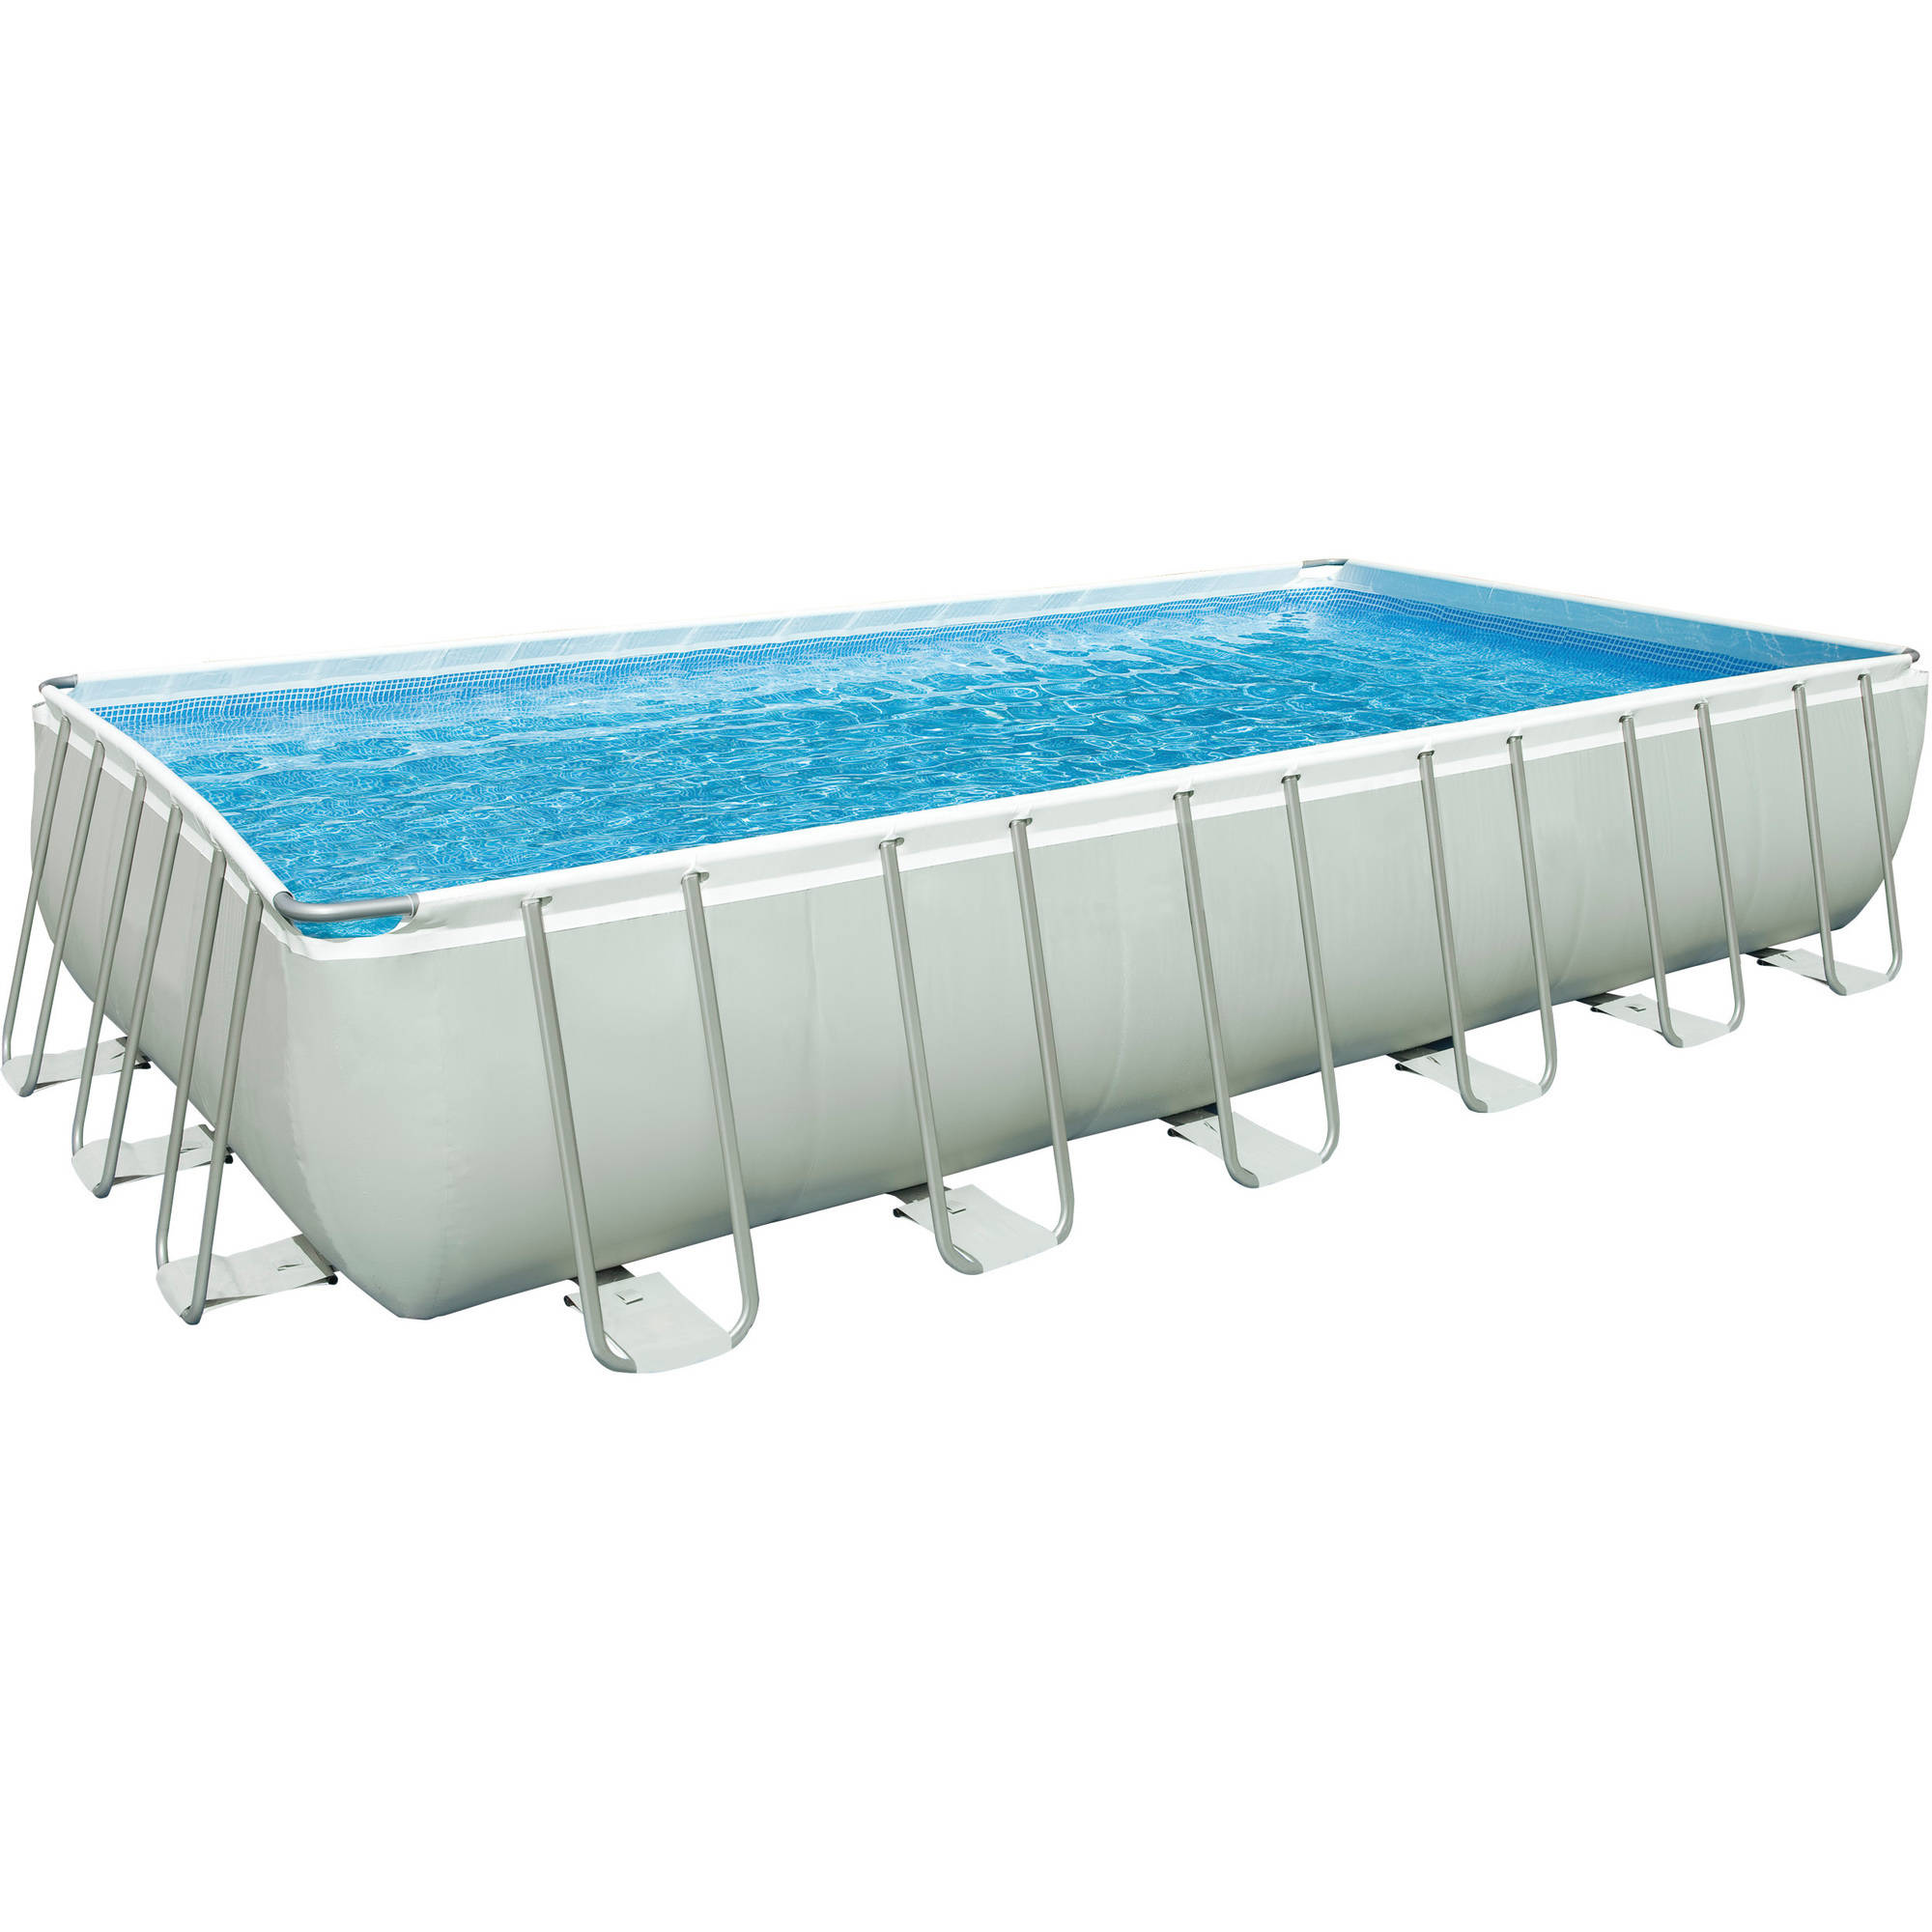 "Intex Recreation 24' x 12' x 52"" Ultra Frame Rectangular ..."